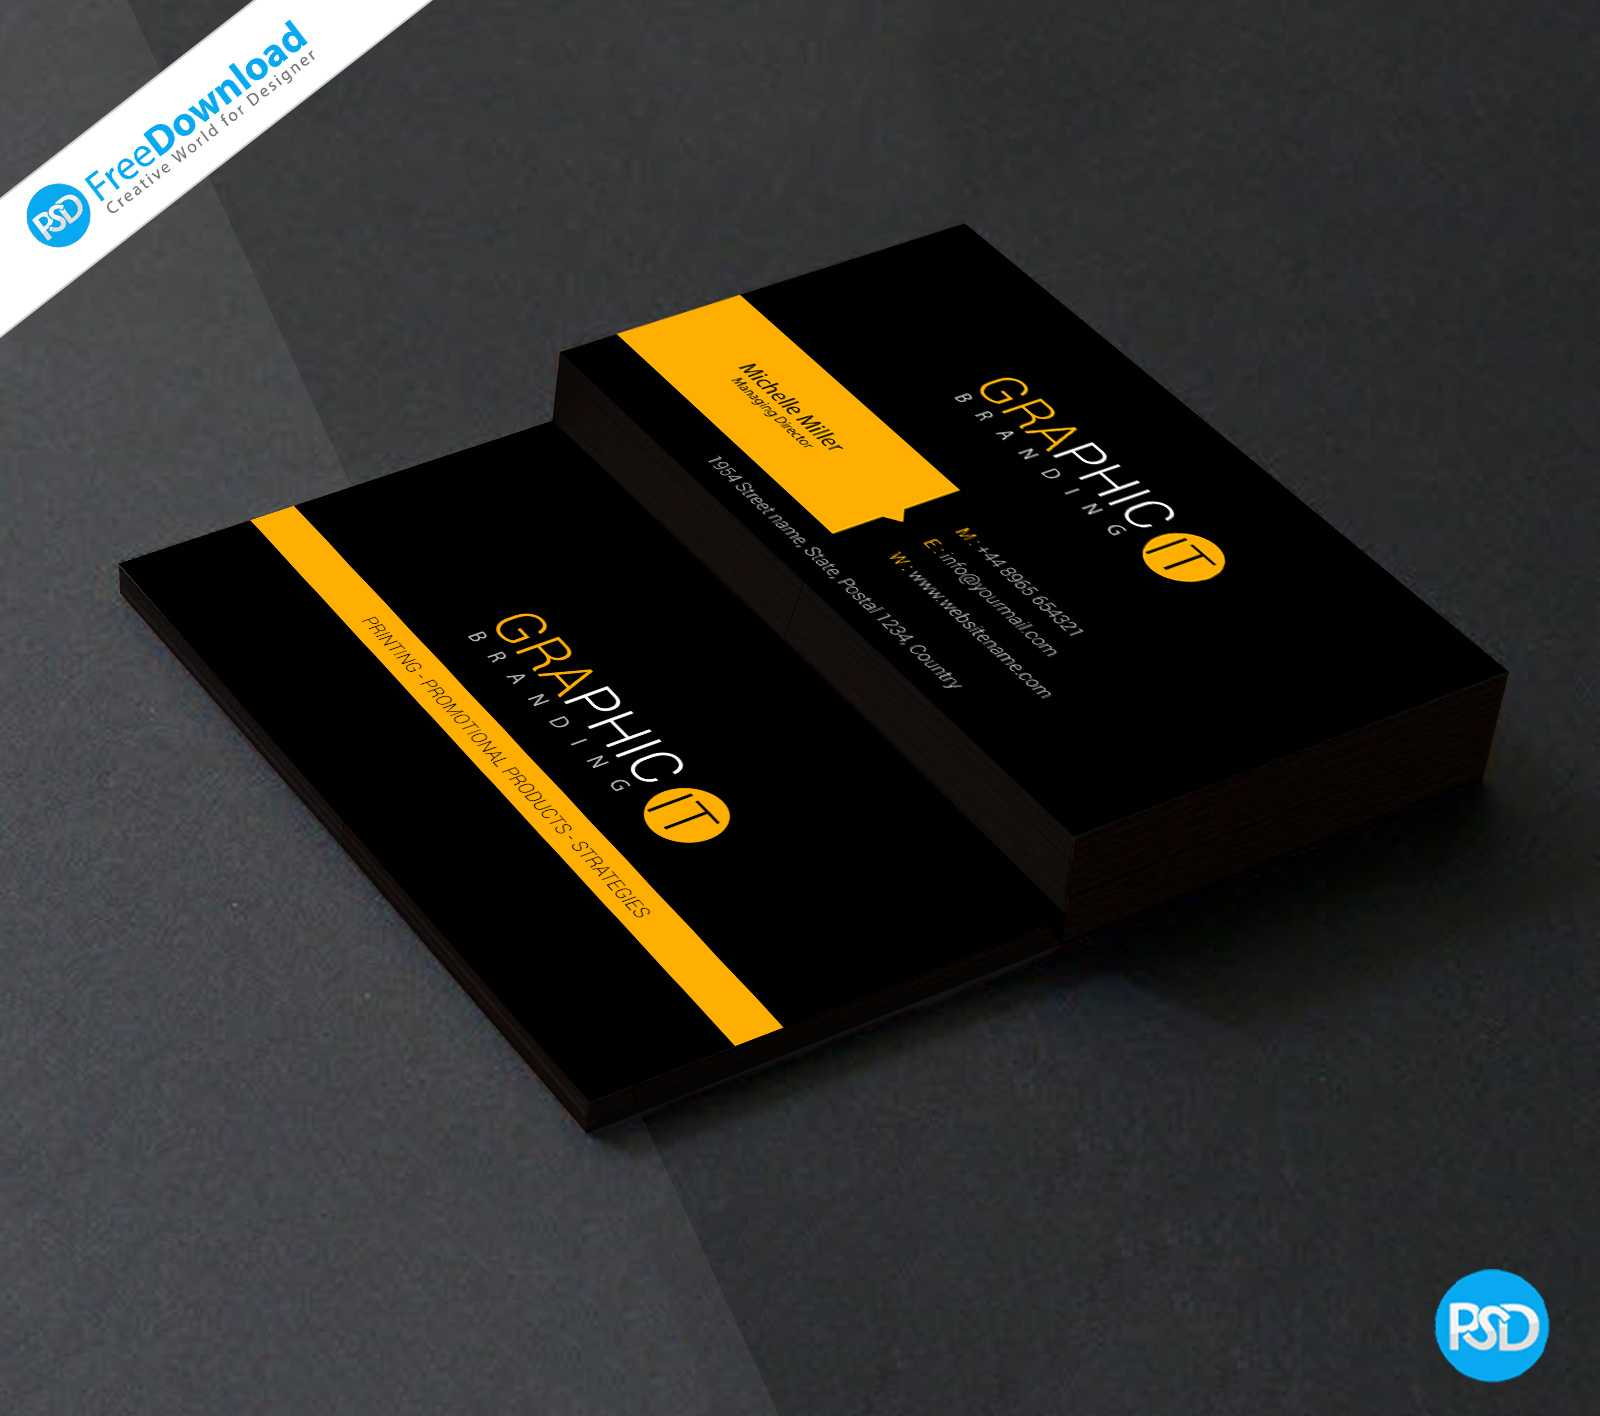 150+ Free Business Card Psd Templates With Regard To Free Business Card Templates In Psd Format